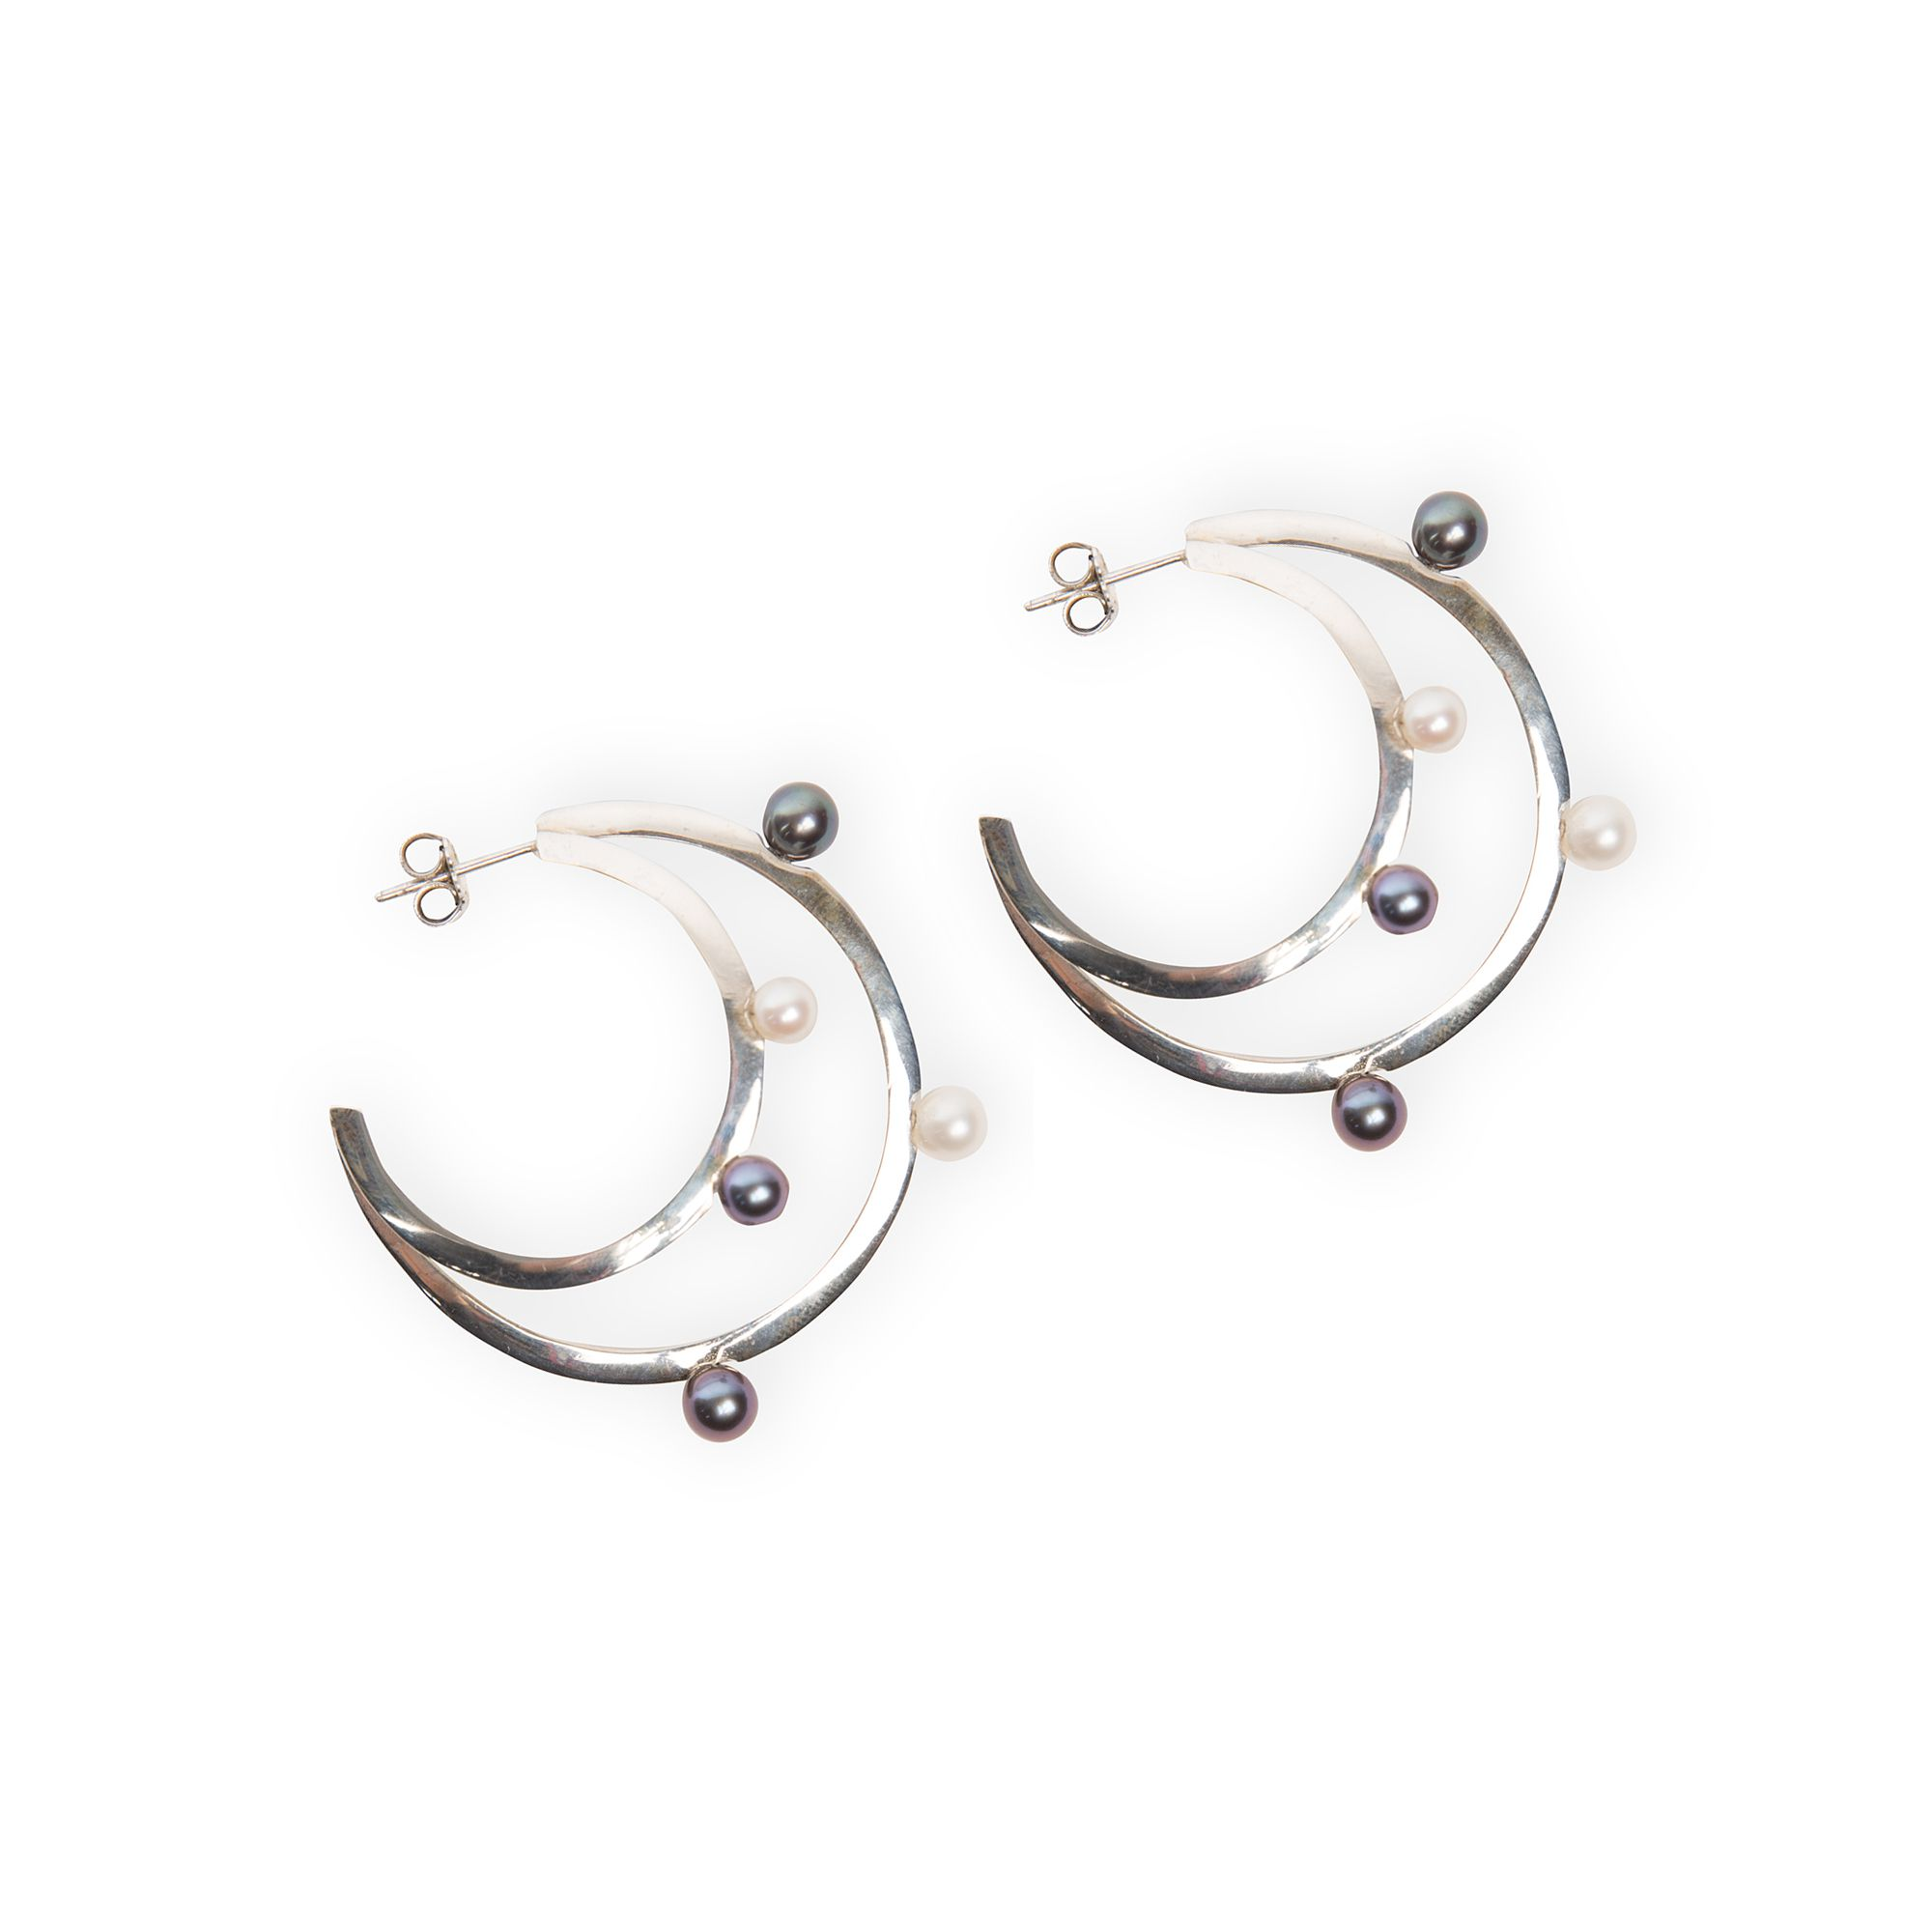 Double hoop earrings with pearls earrings in silver with pearls